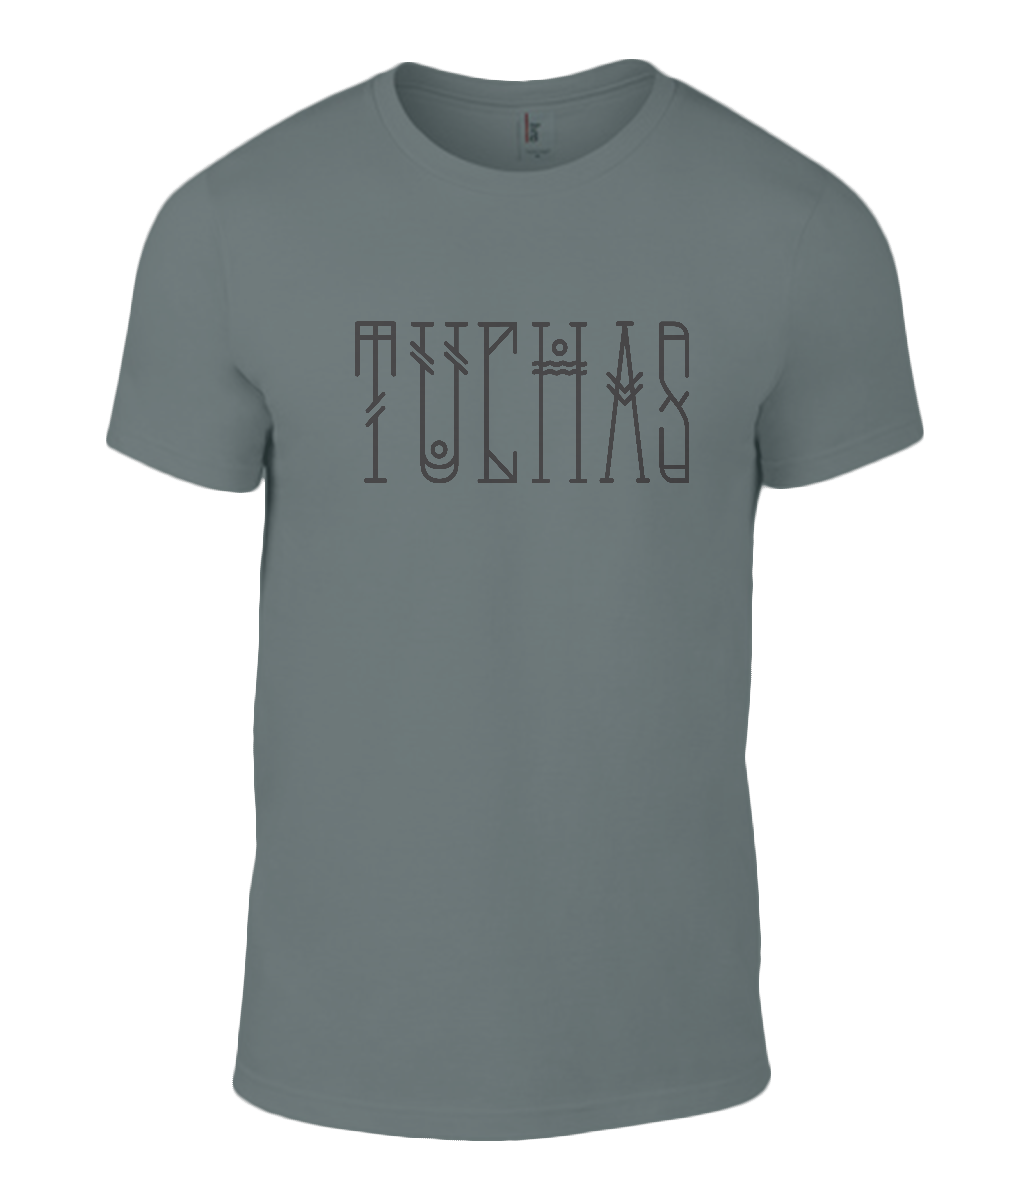 Round Neck T-Shirt - Tuchas - Lokshen Pudding UK - Grey